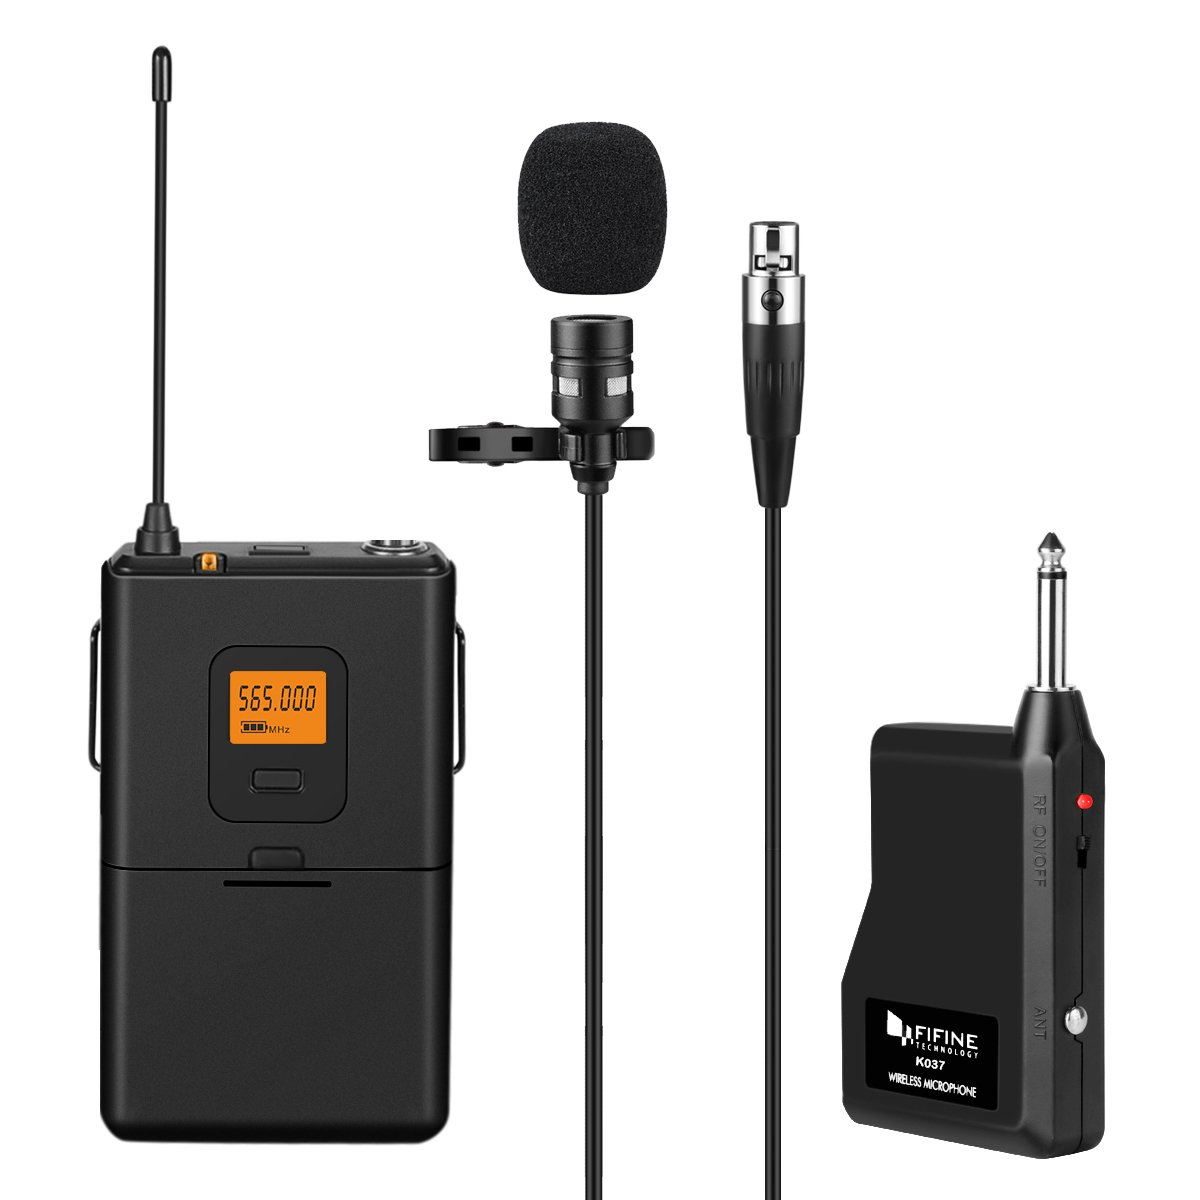 Fifine 20-Channel UHF Wireless Lavalier Lapel Microphone System with Bodypack Transmitter, Mini XLR Female Lapel Mic and Portable Receiver, 1/4 Inch Output. Perfect for Live Performance. (K037) by FIFINE TECHNOLOGY